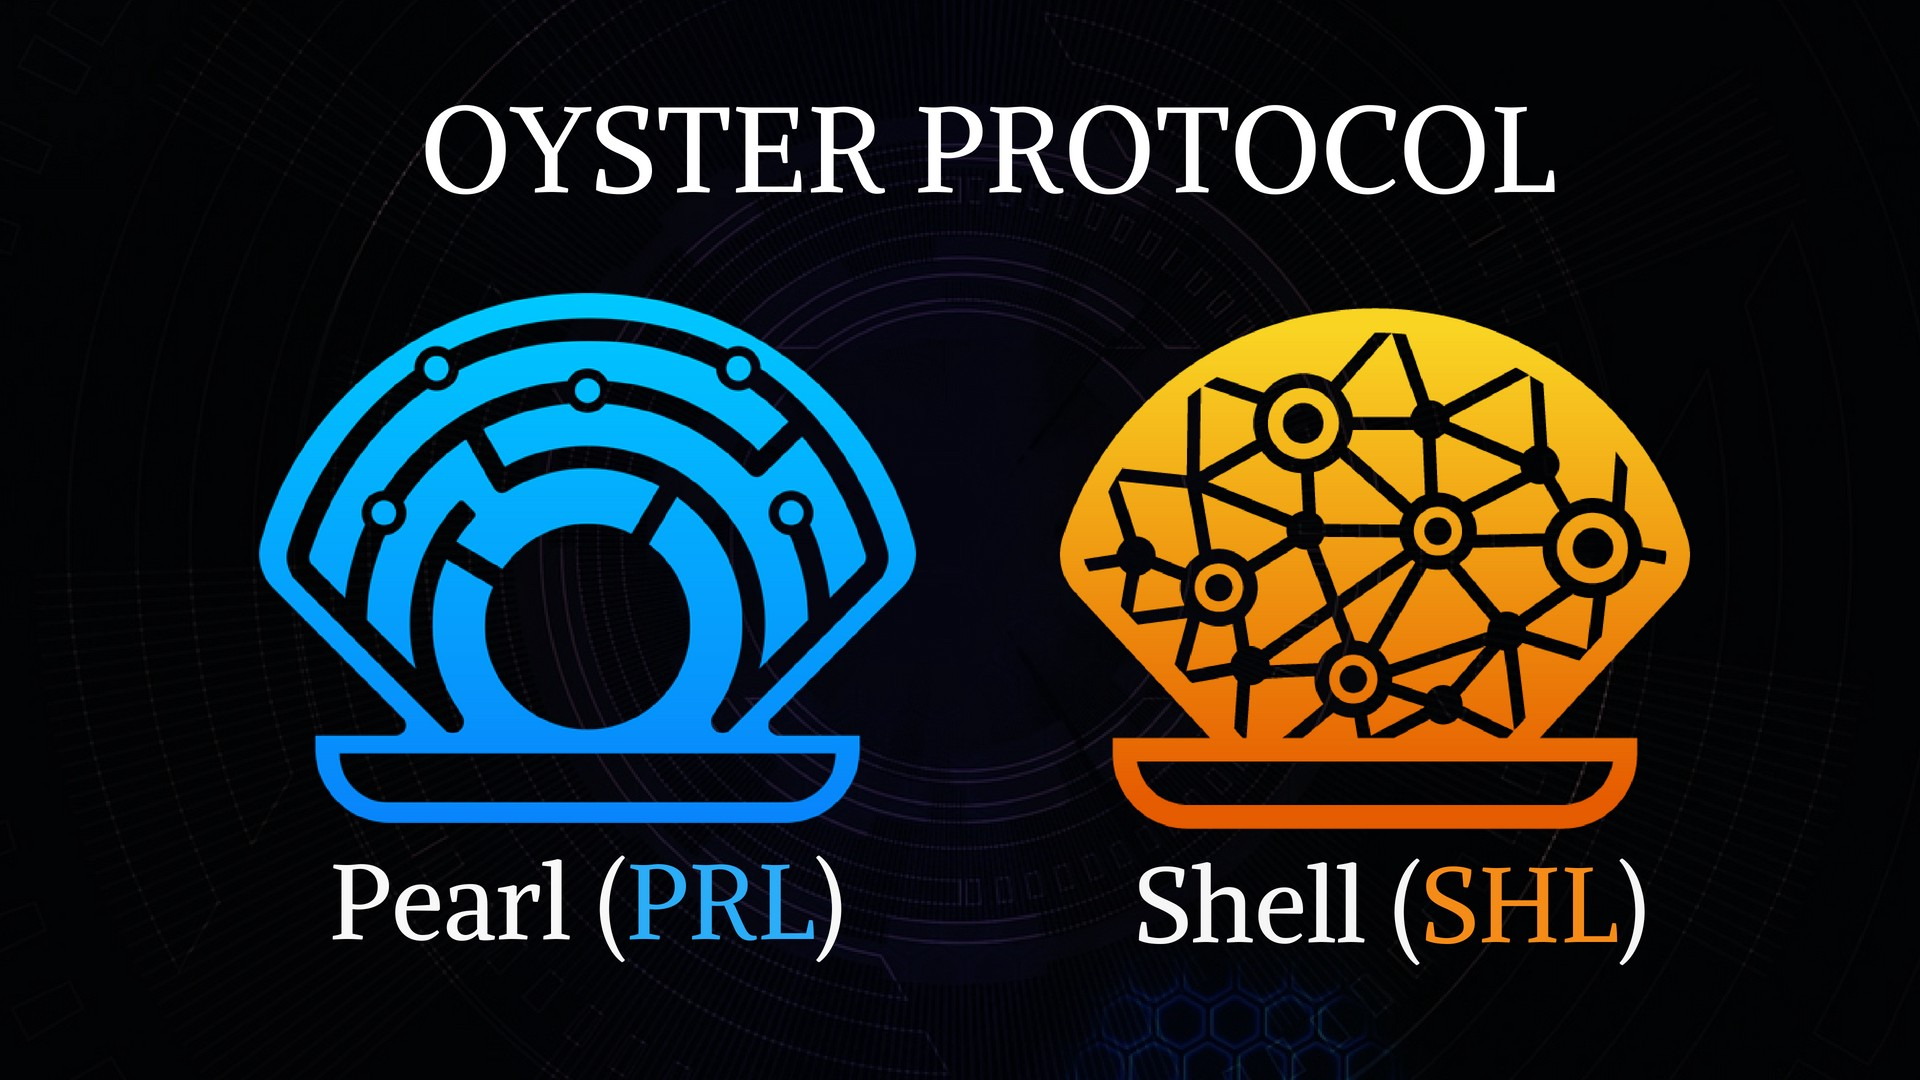 Oyster Shell Shl A New Era Of The Network S Super Computer